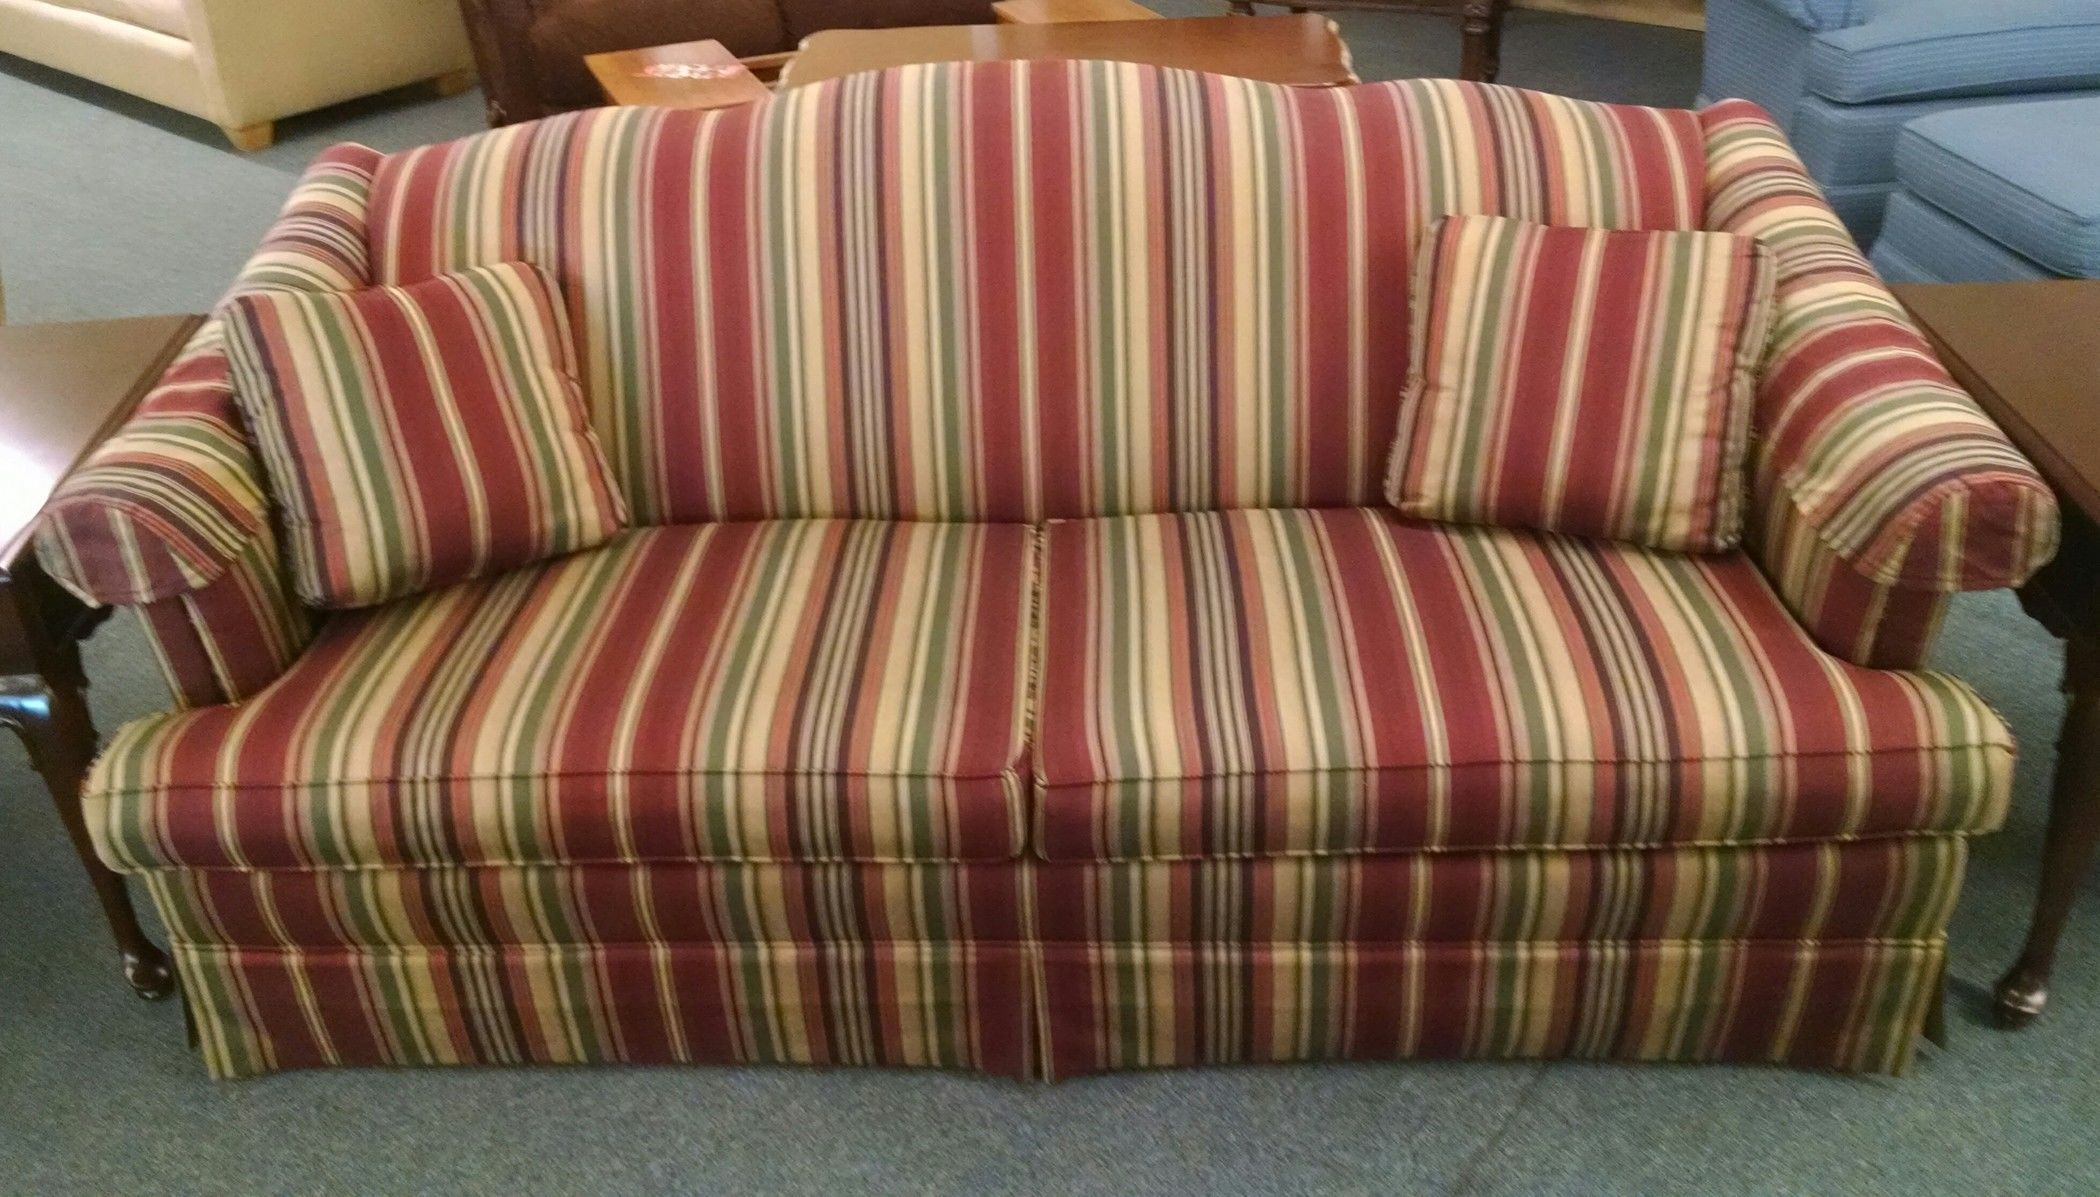 Thomasville Striped Sofa Delmarva Furniture Consignment